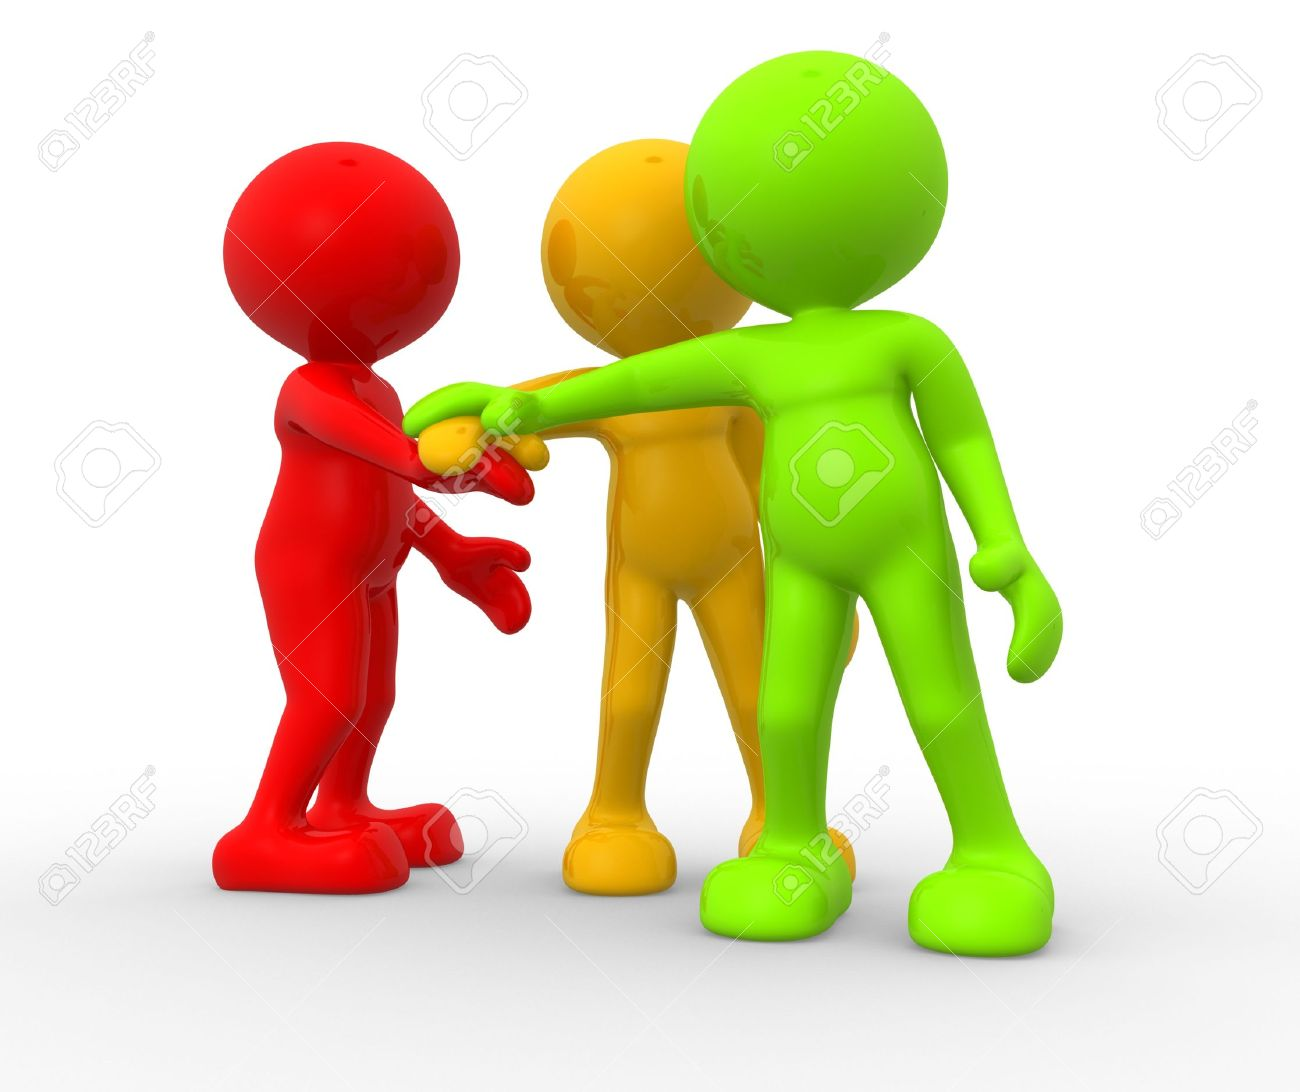 3d people - men, person together. Business team joining hands concept Standard-Bild - 17639982